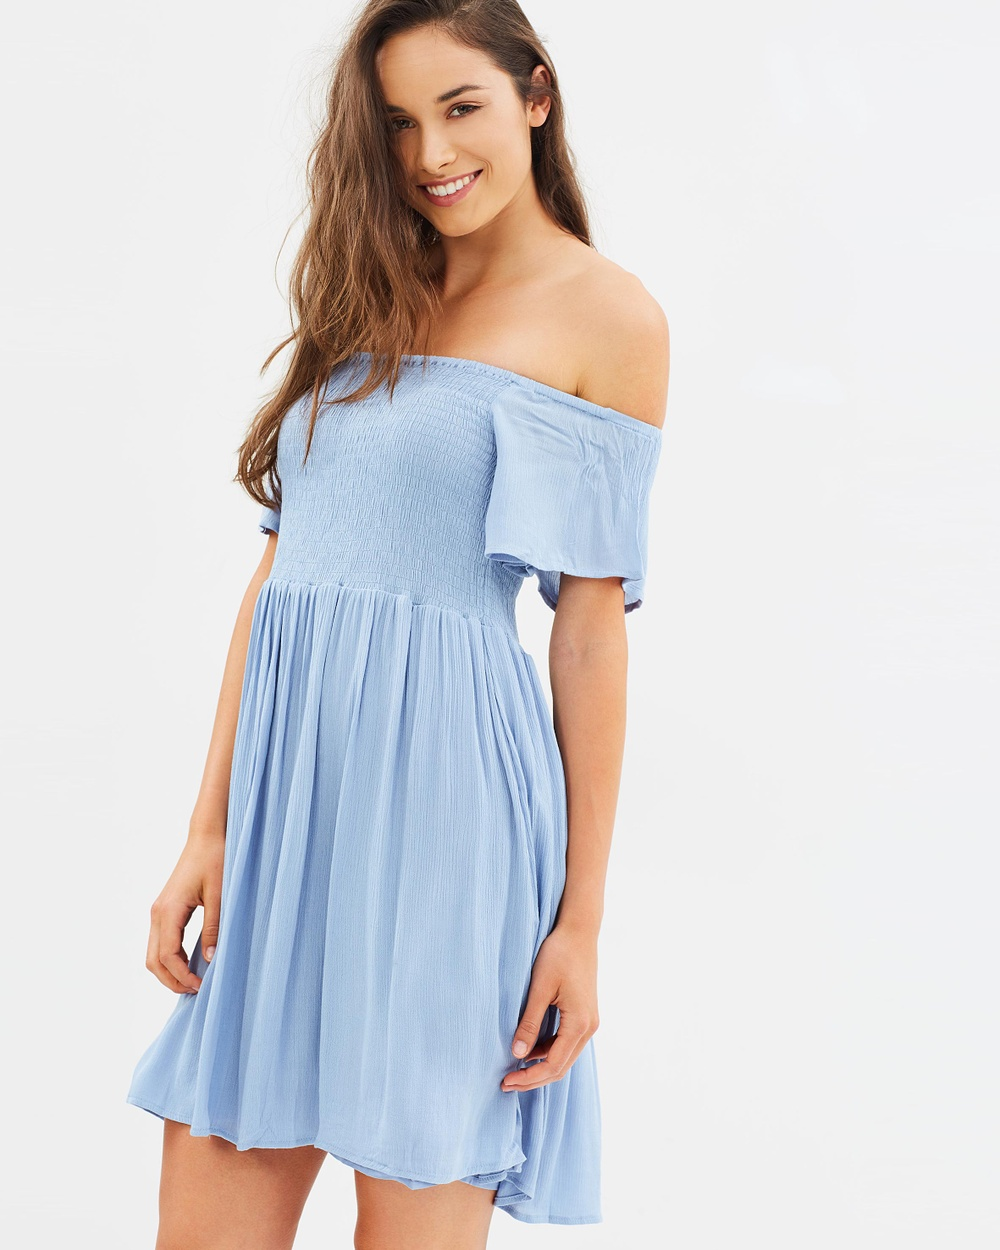 Sass Renata Shirred Bust Dress Dresses Blue Renata Shirred Bust Dress